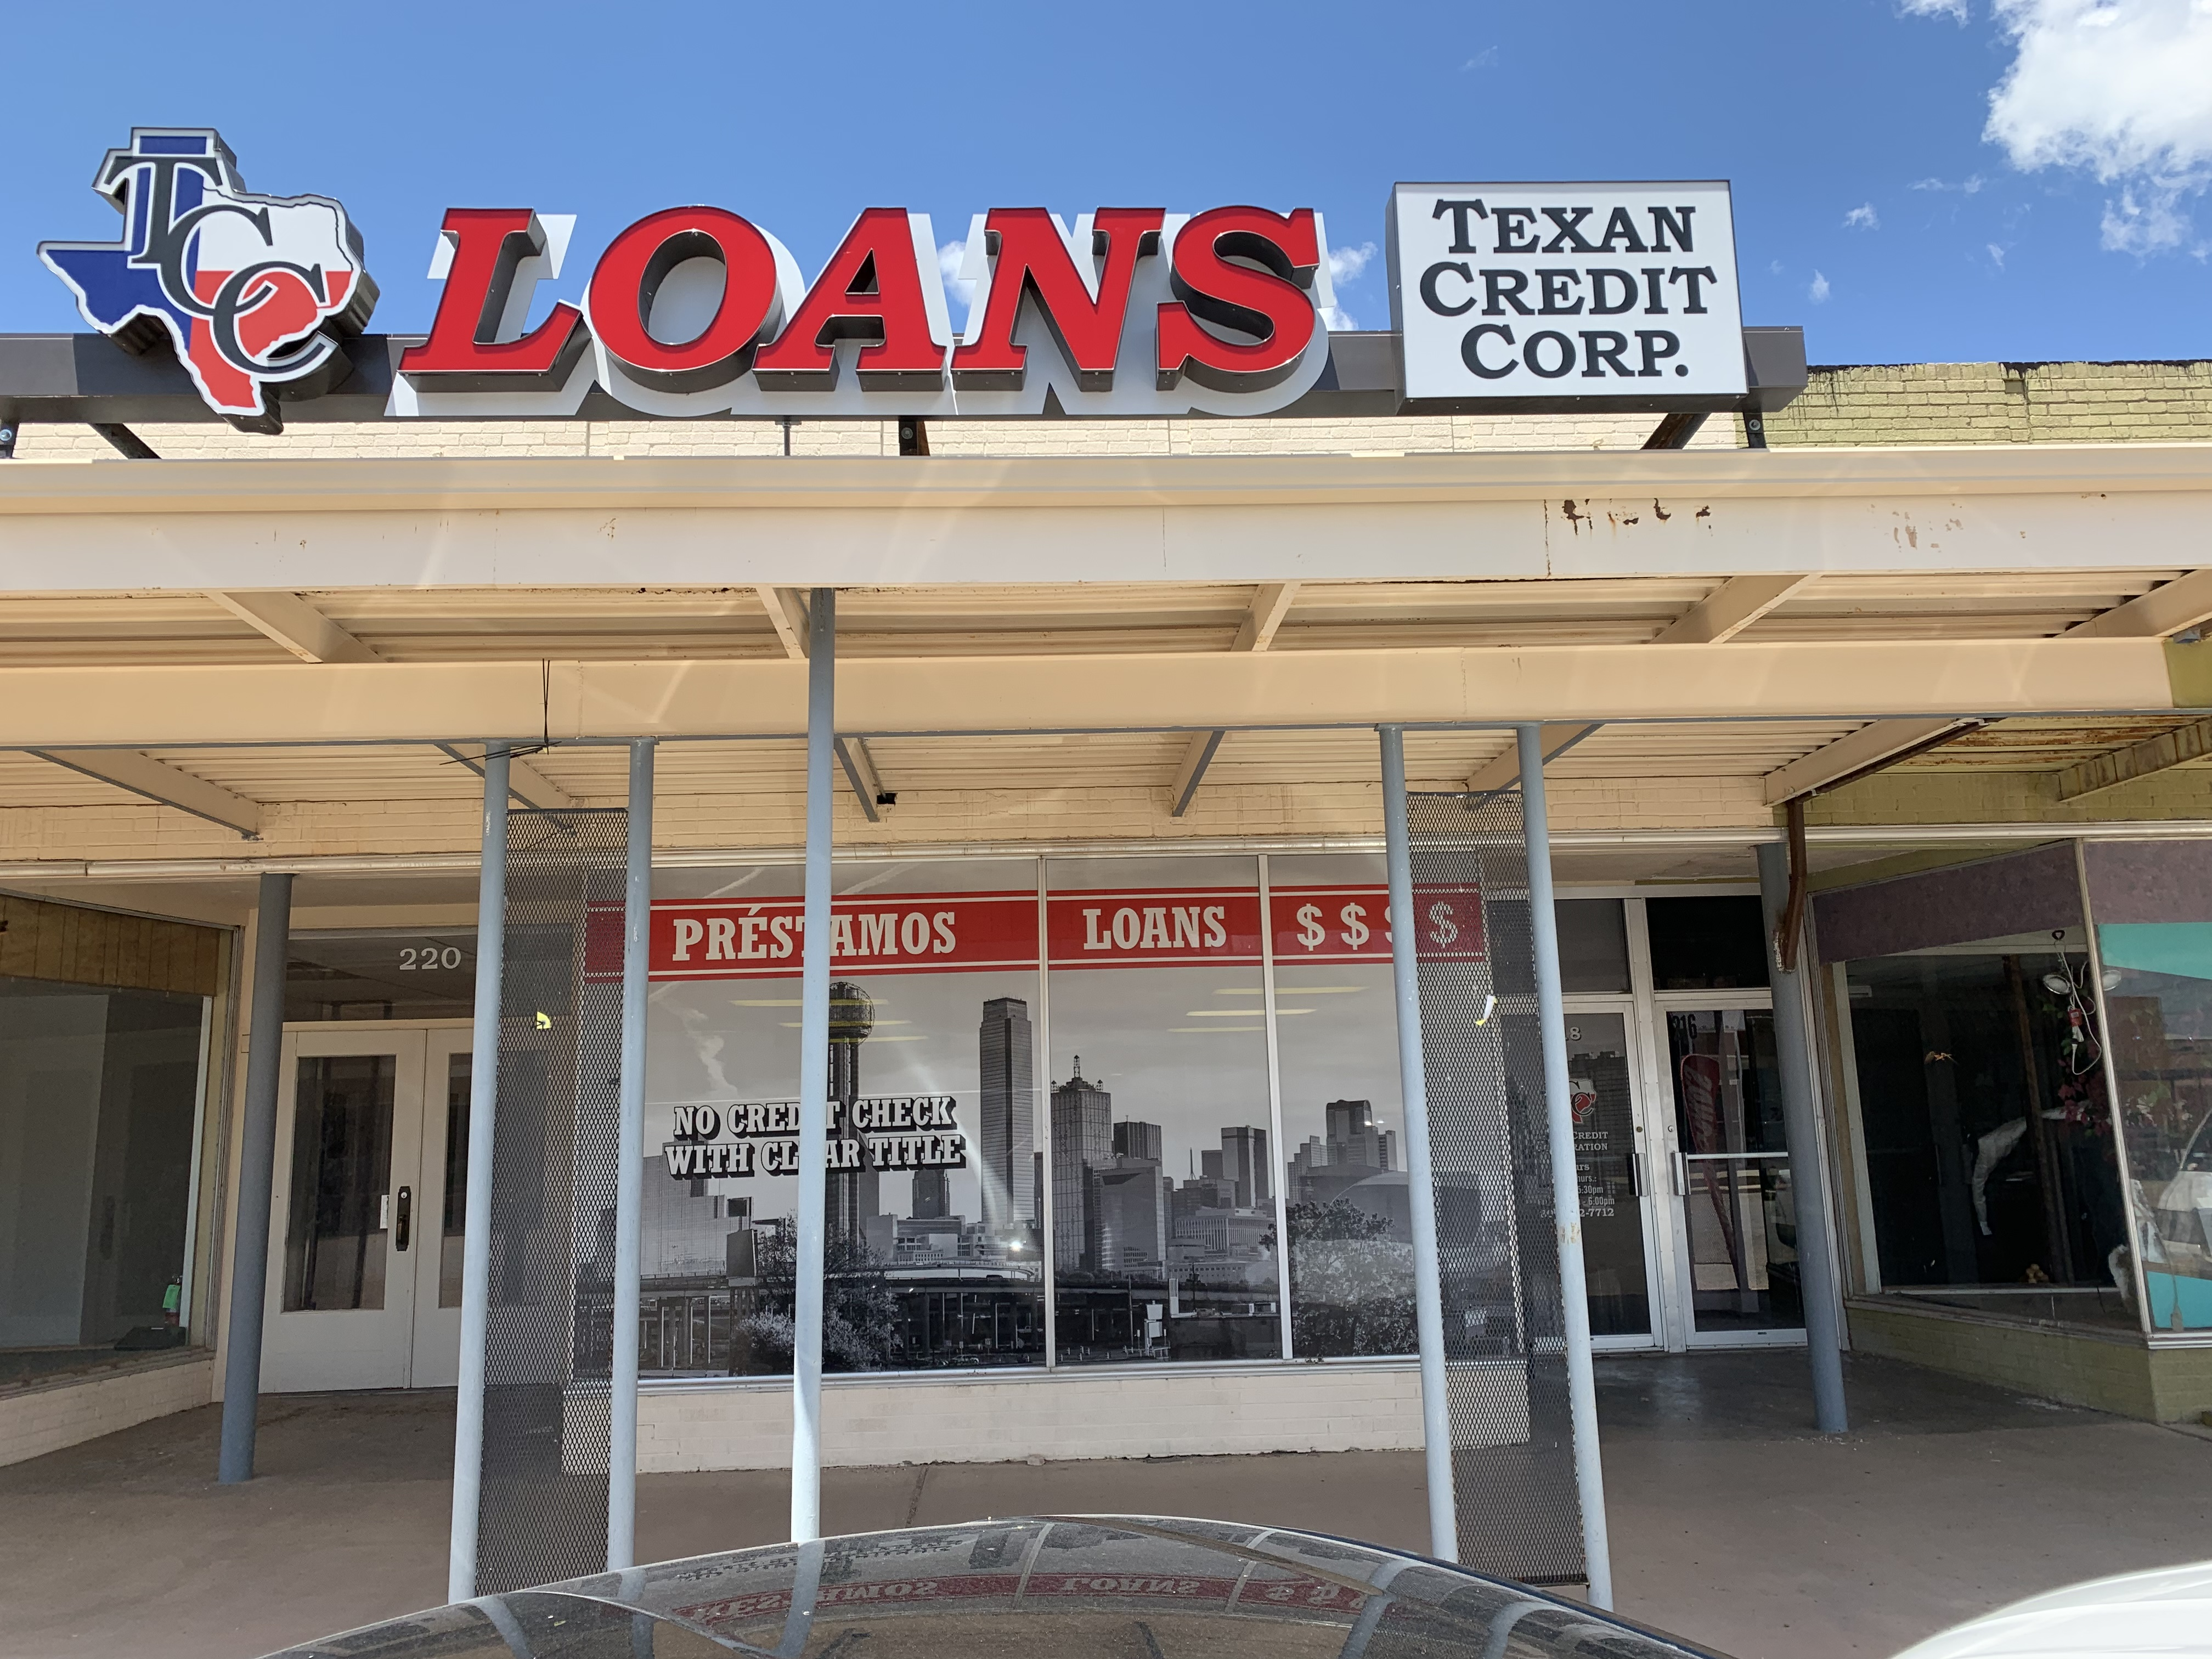 No Credit Payday Loans in Tyler, TX